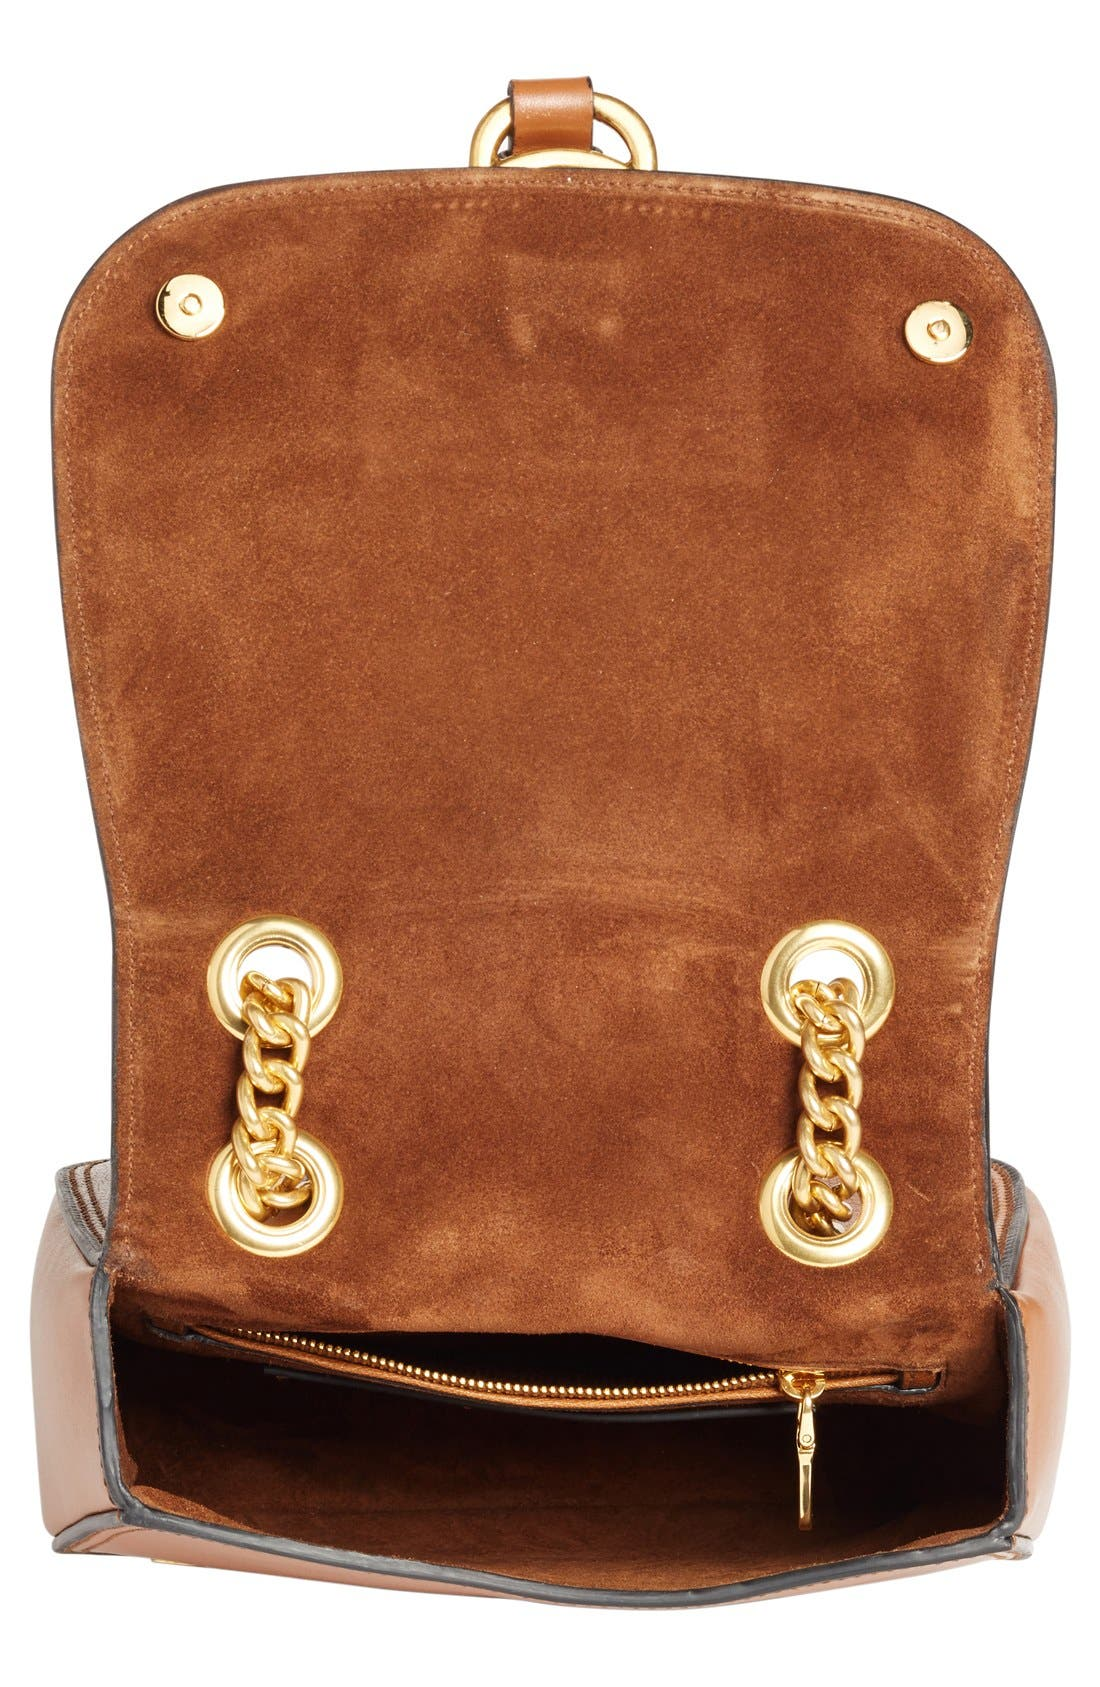 'Dahlia' Goatskin Leather Saddle Bag,                             Alternate thumbnail 8, color,